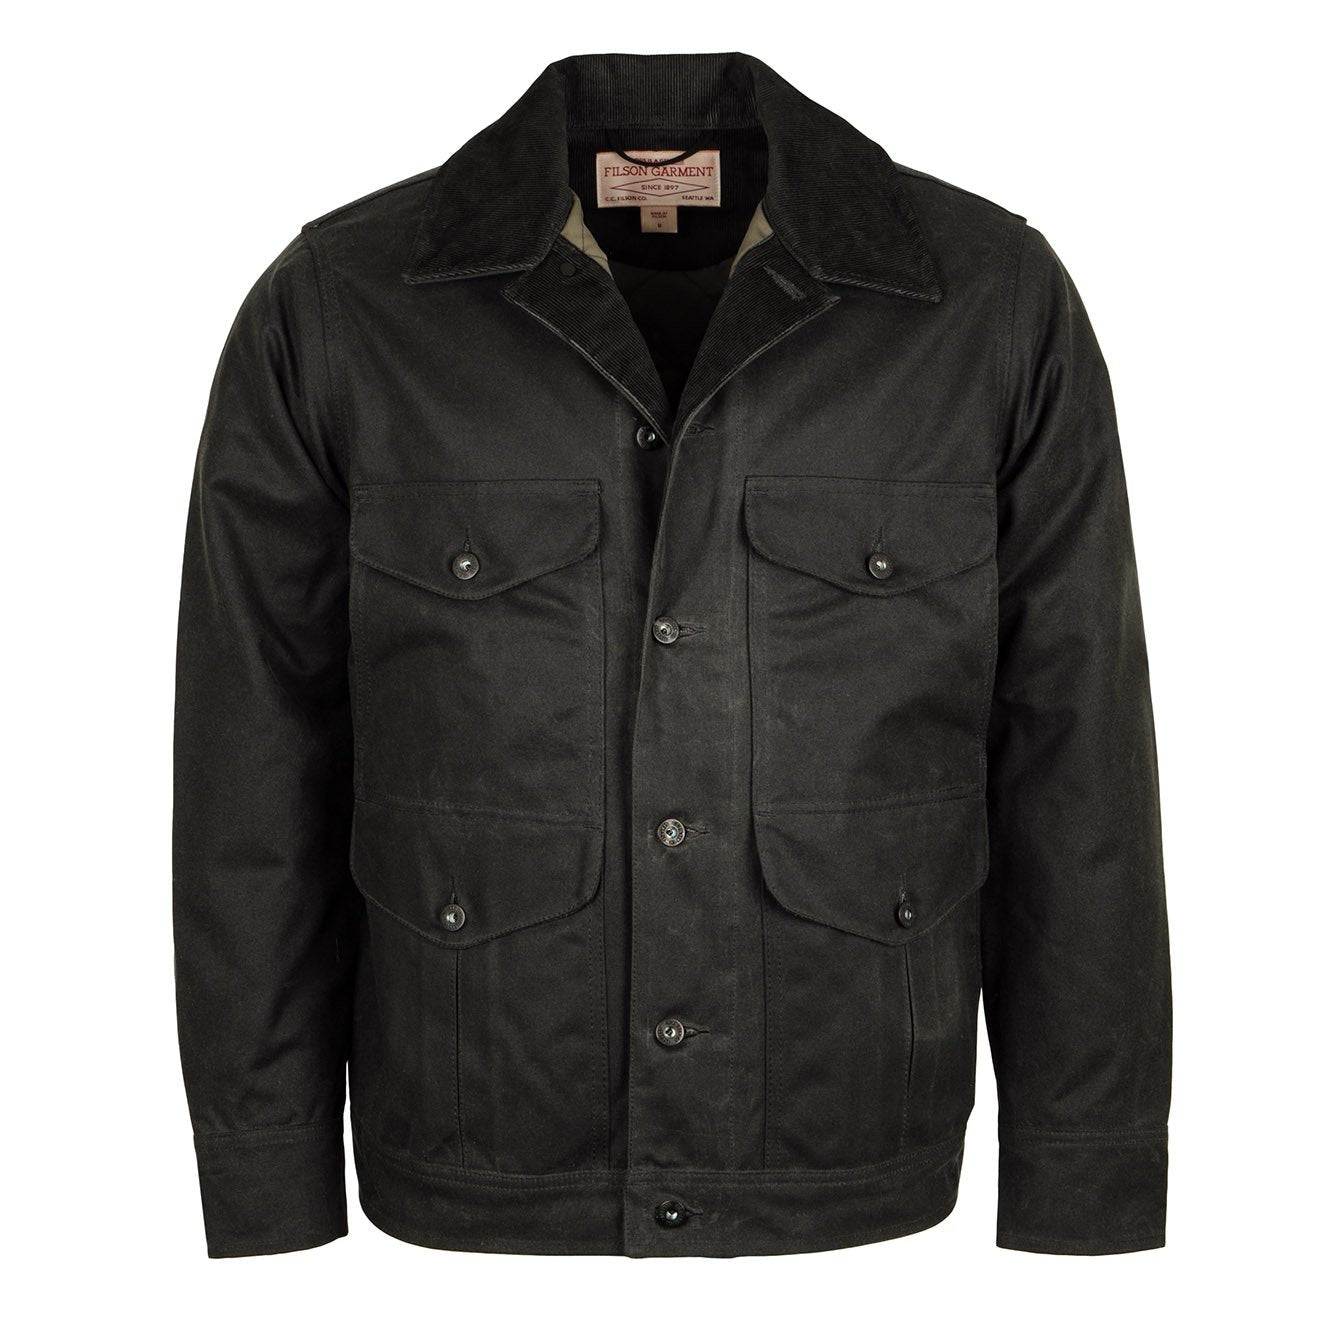 Filson Journeyman Insulated Jacket Charcoal